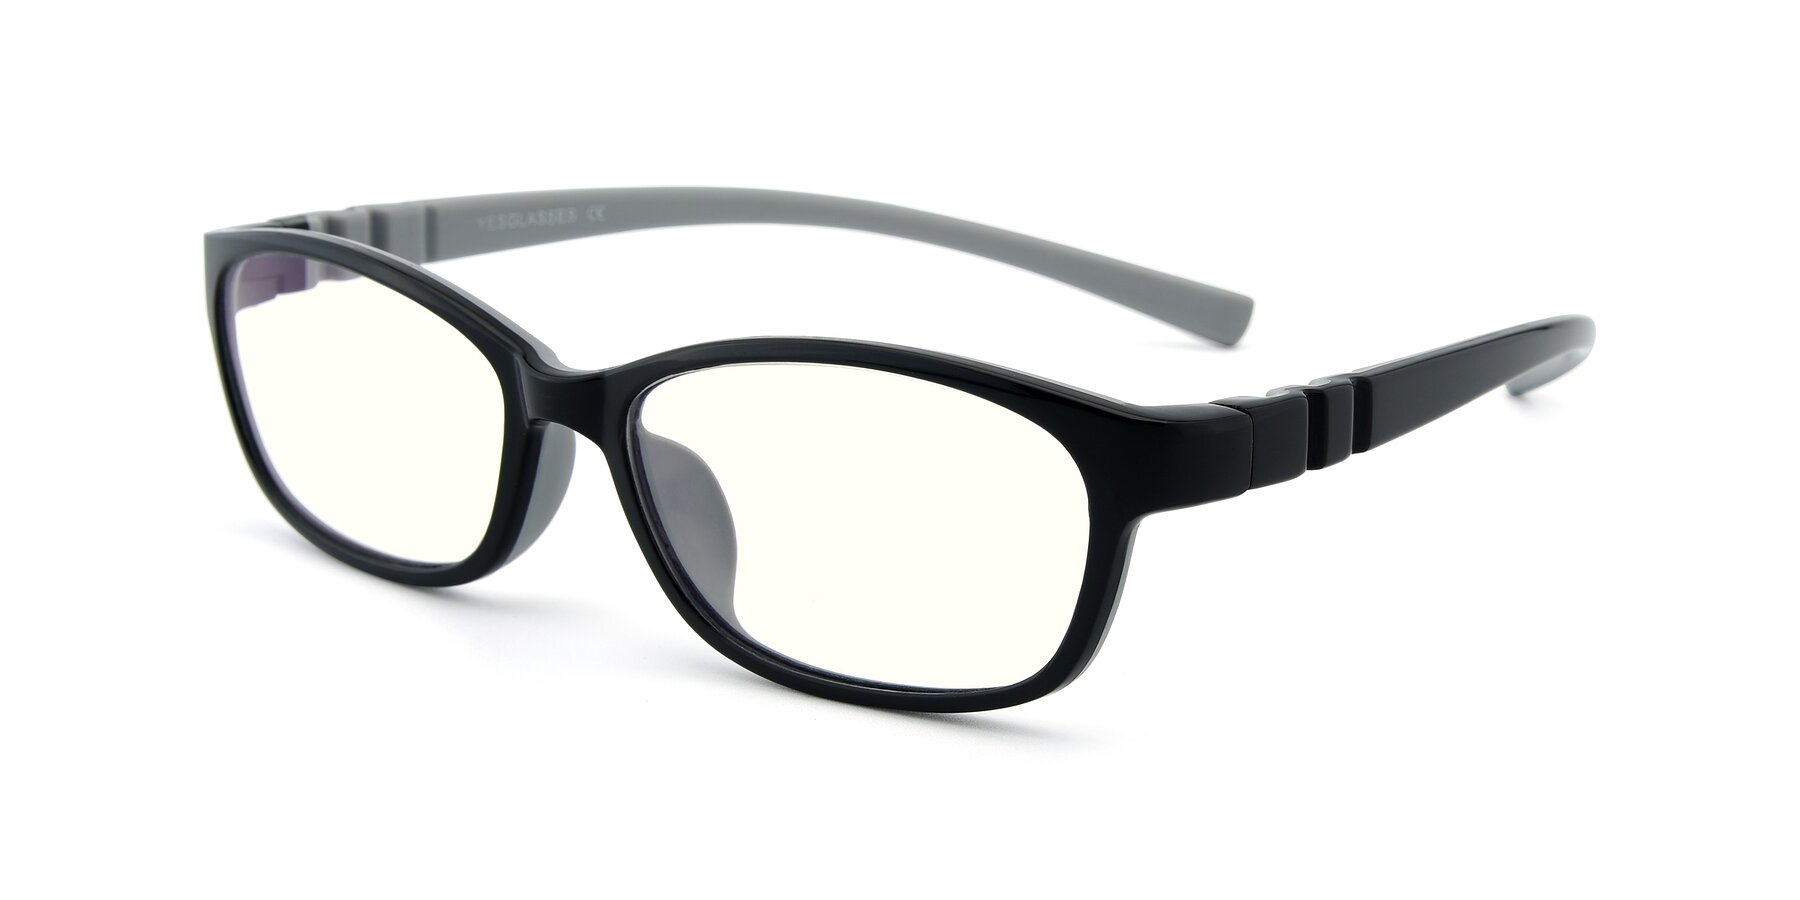 Angle of 556 in Black-Gray with Clear Blue Light Blocking Lenses